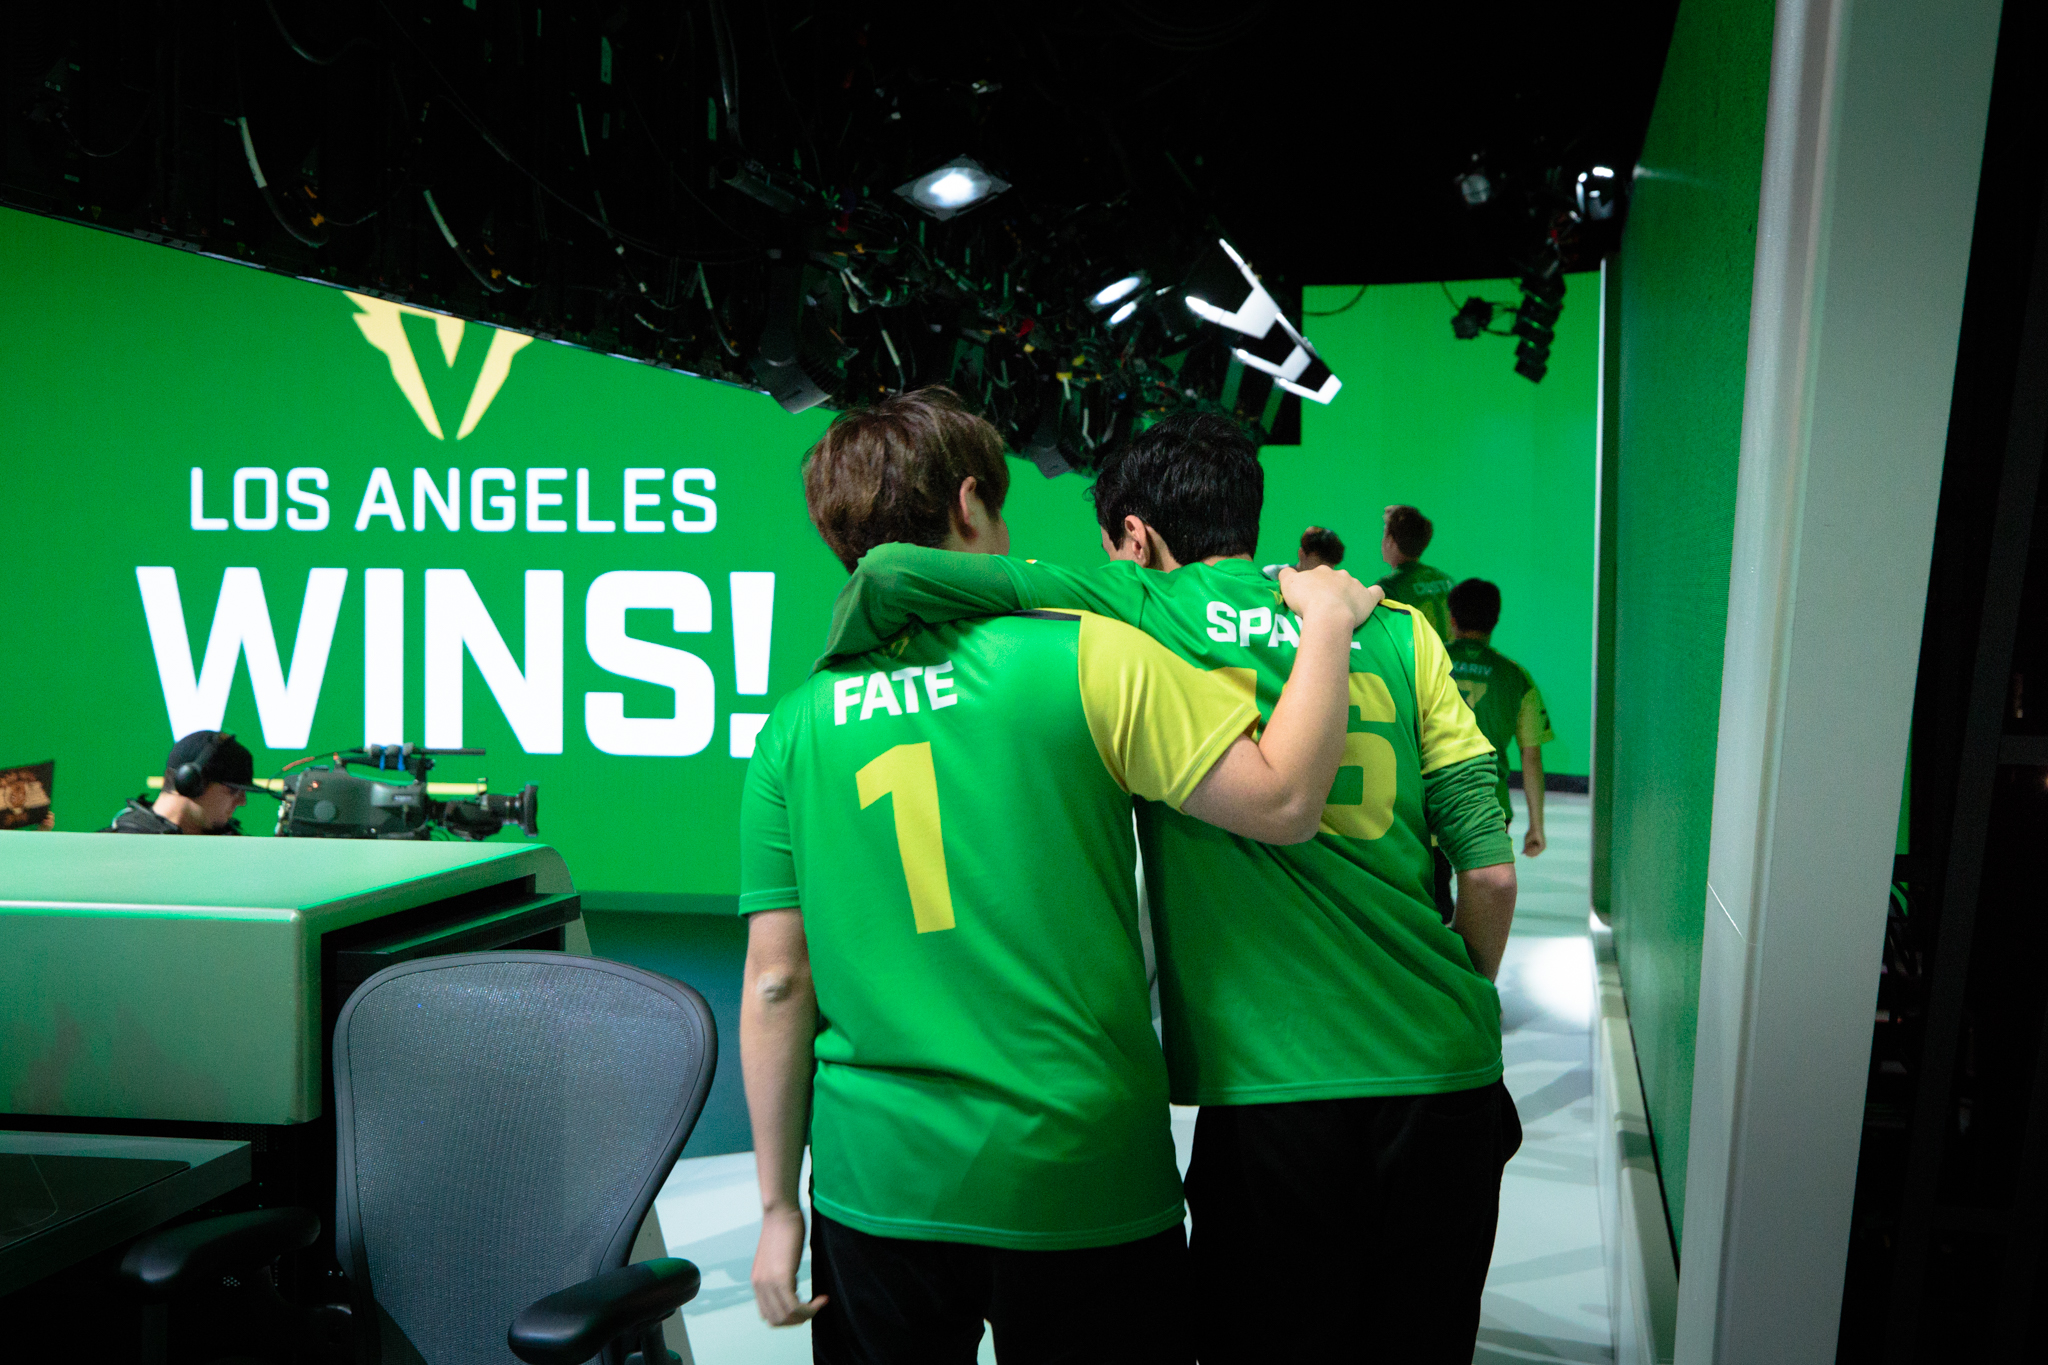 Overwatch League Standings After Stage 4, Week 1 (Win